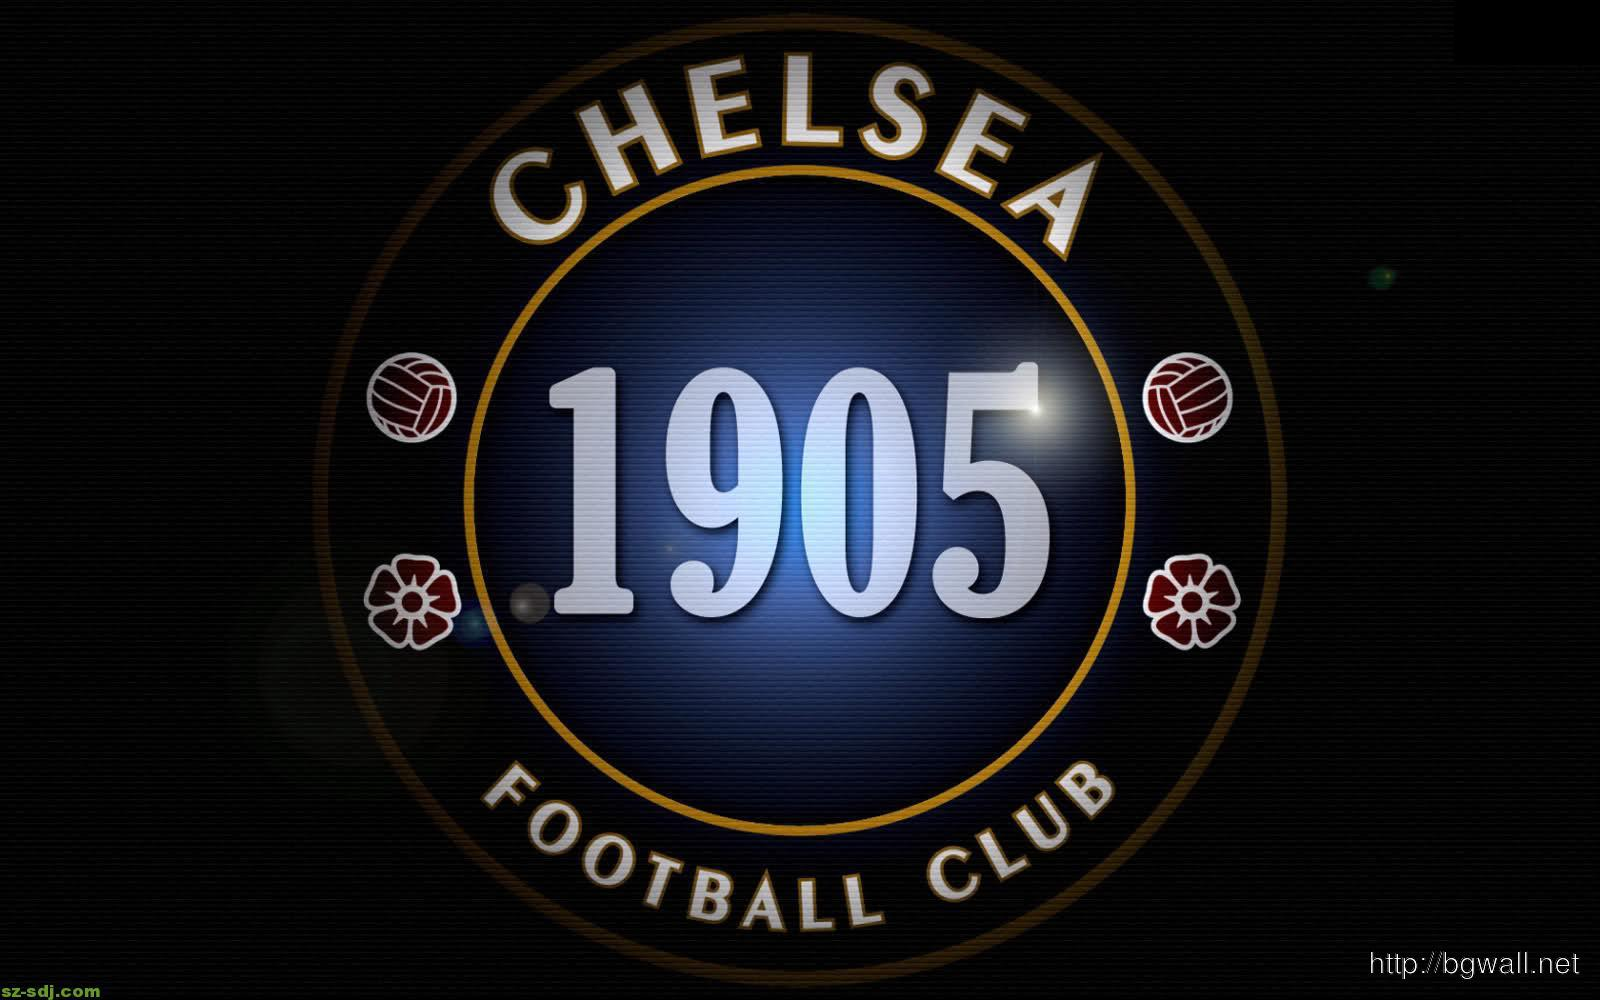 Black Chelsea Logo Wallpaper Hd Image